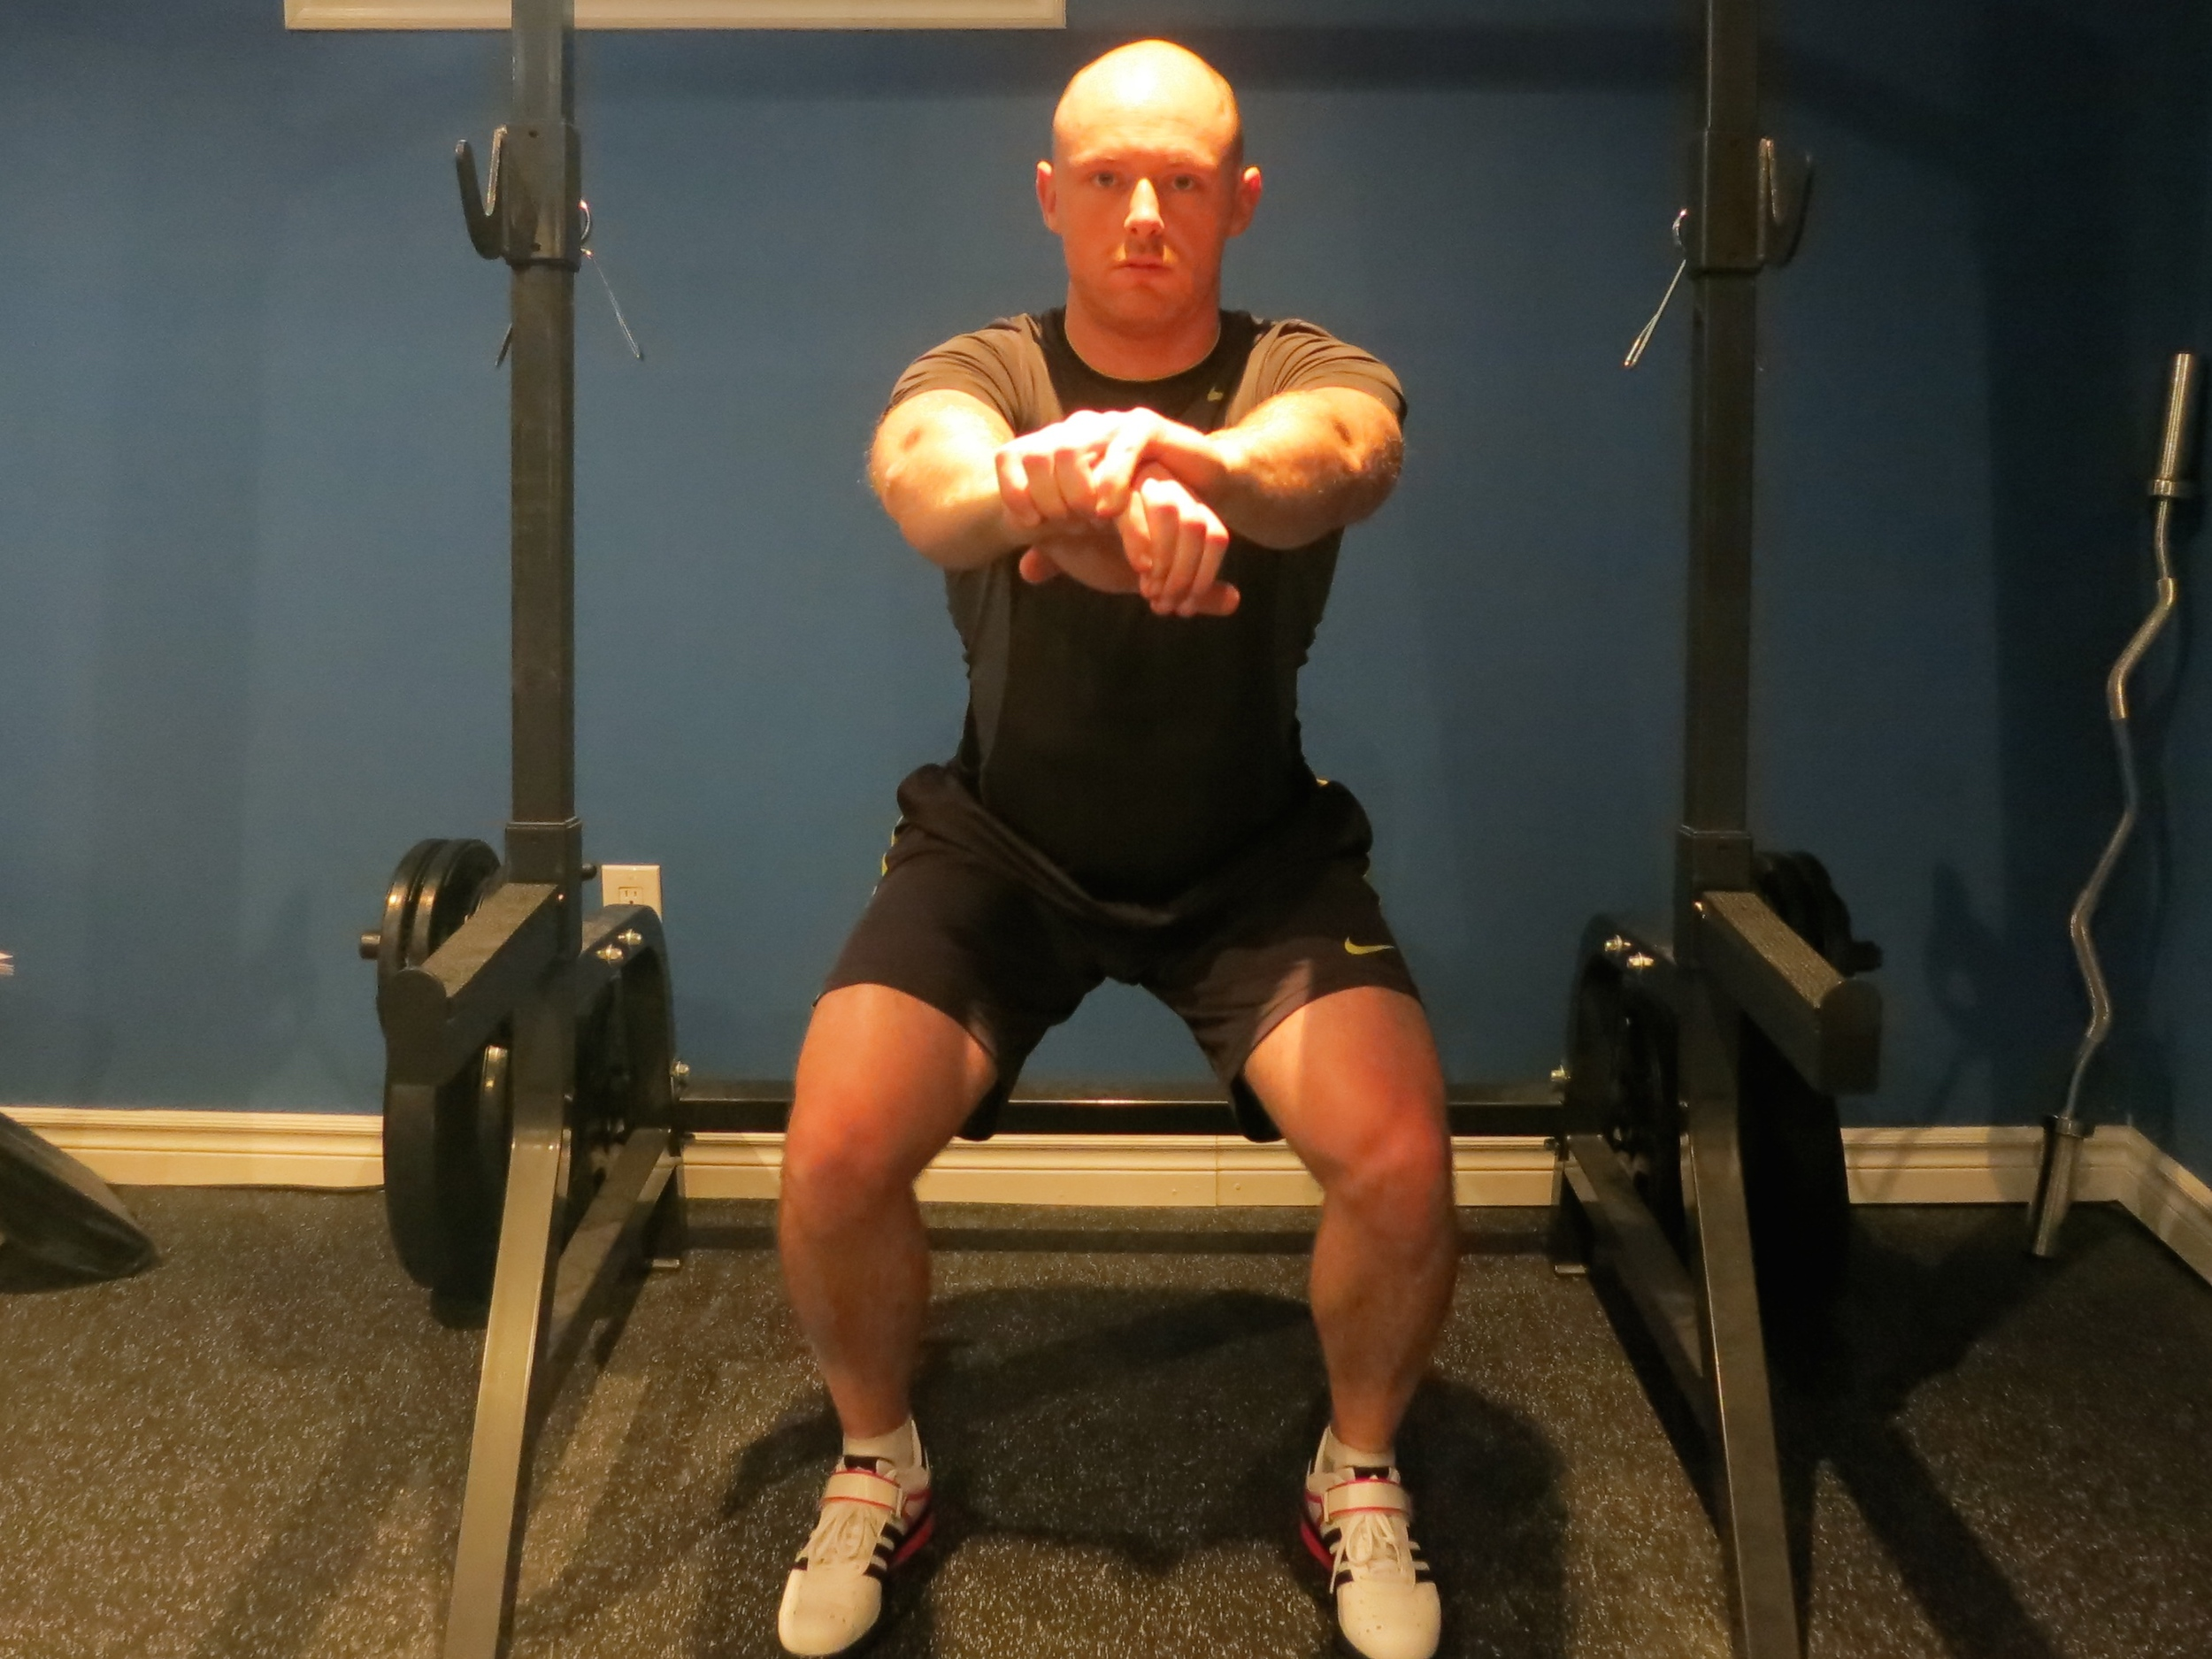 Knees bend and track towards middle toe. Consciously drive and maintain wide knees throughout the full range of motion. Weight is distributed through the heels and outside of the feet.